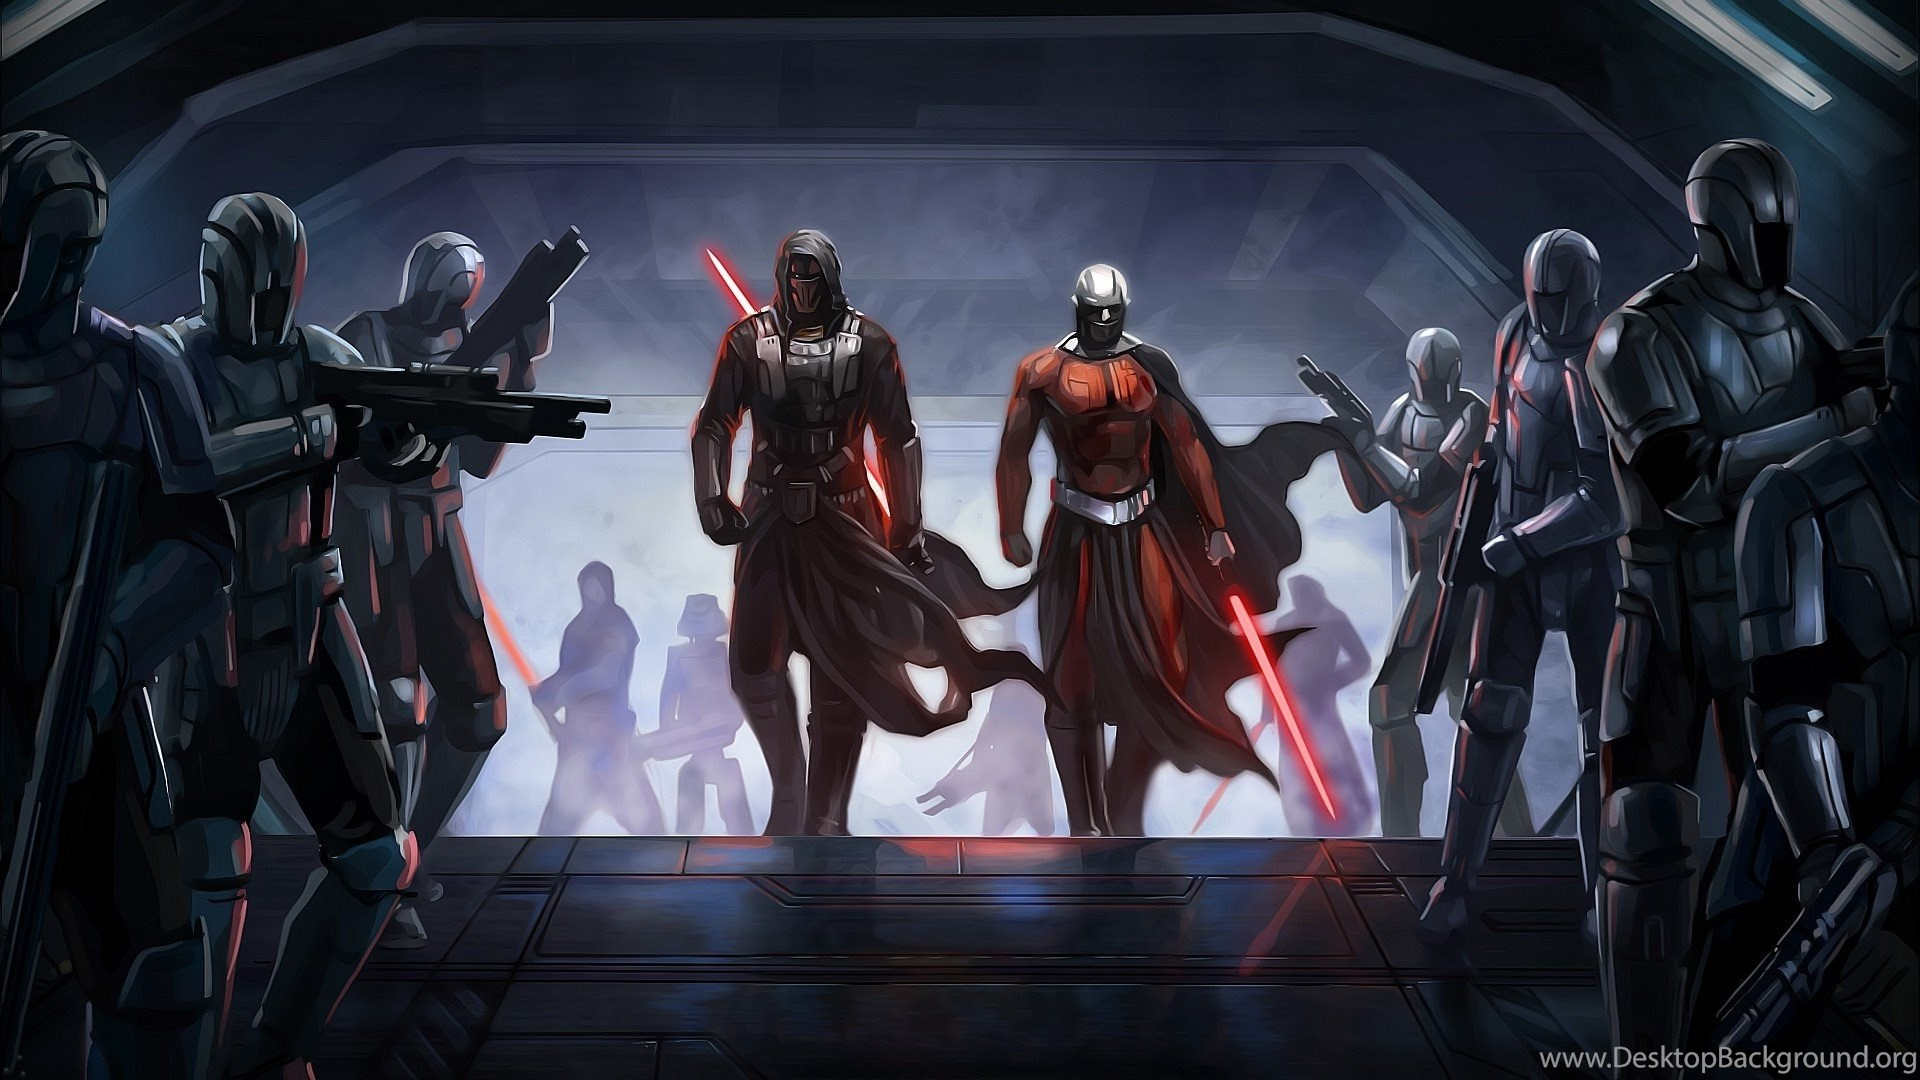 High Resolution Star Wars Sith Wallpapers Full Size Desktop Background